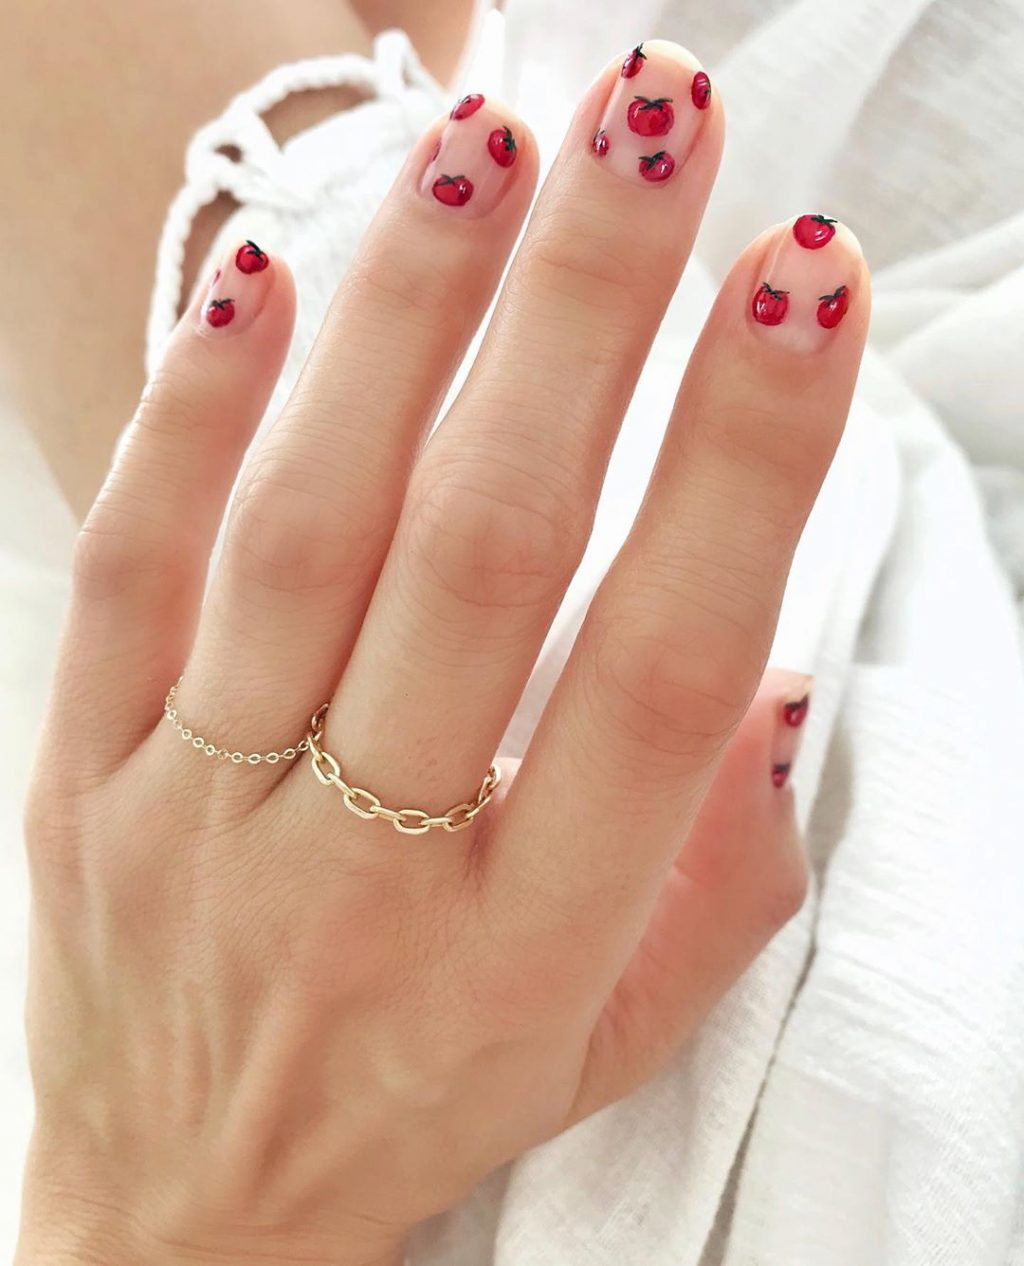 This New Manicure Trend Comes Fresh from the Garden